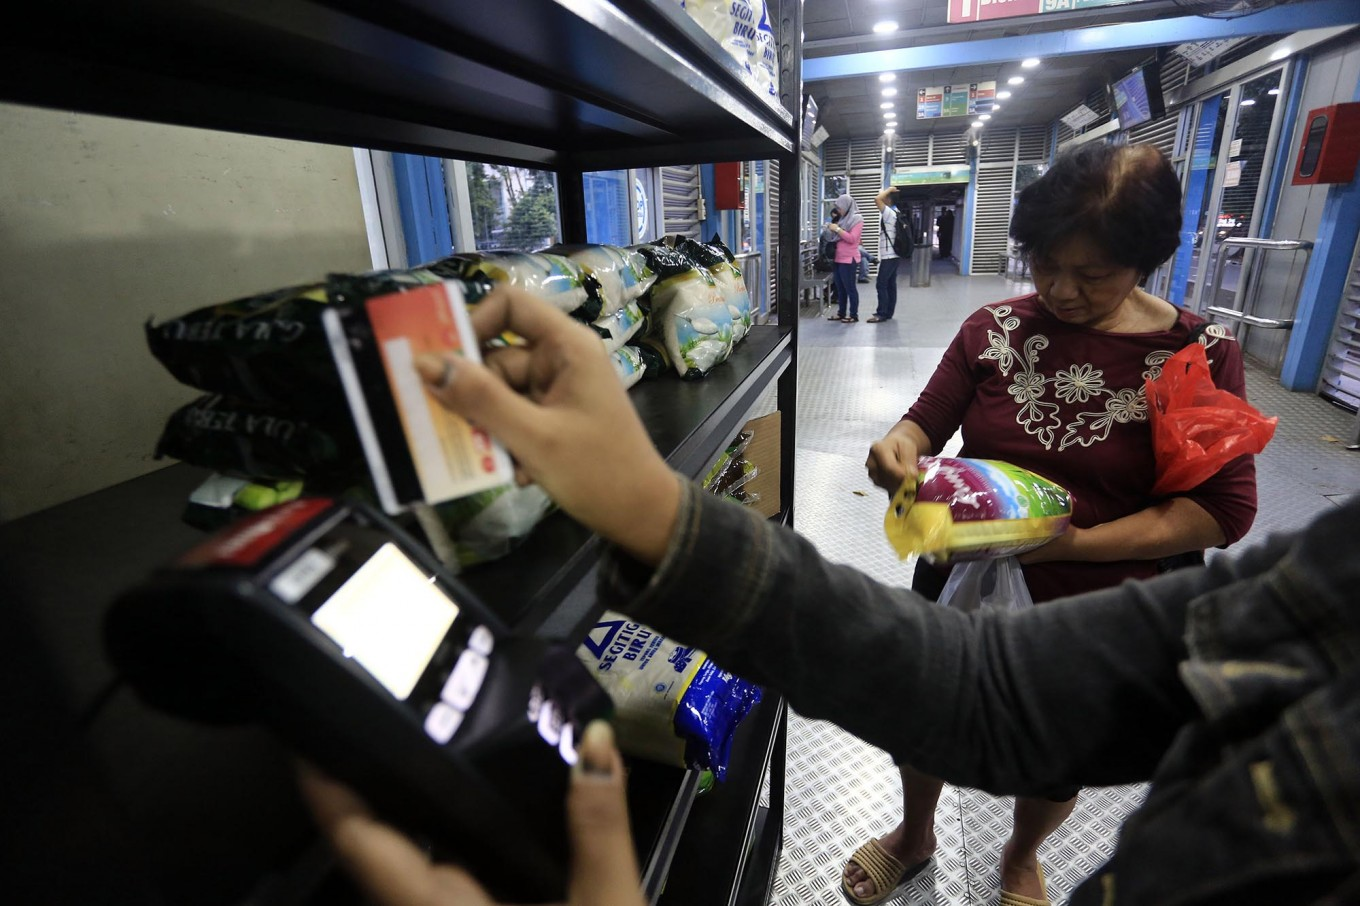 Transjakarta to sell meat at some stops during Ramadhan